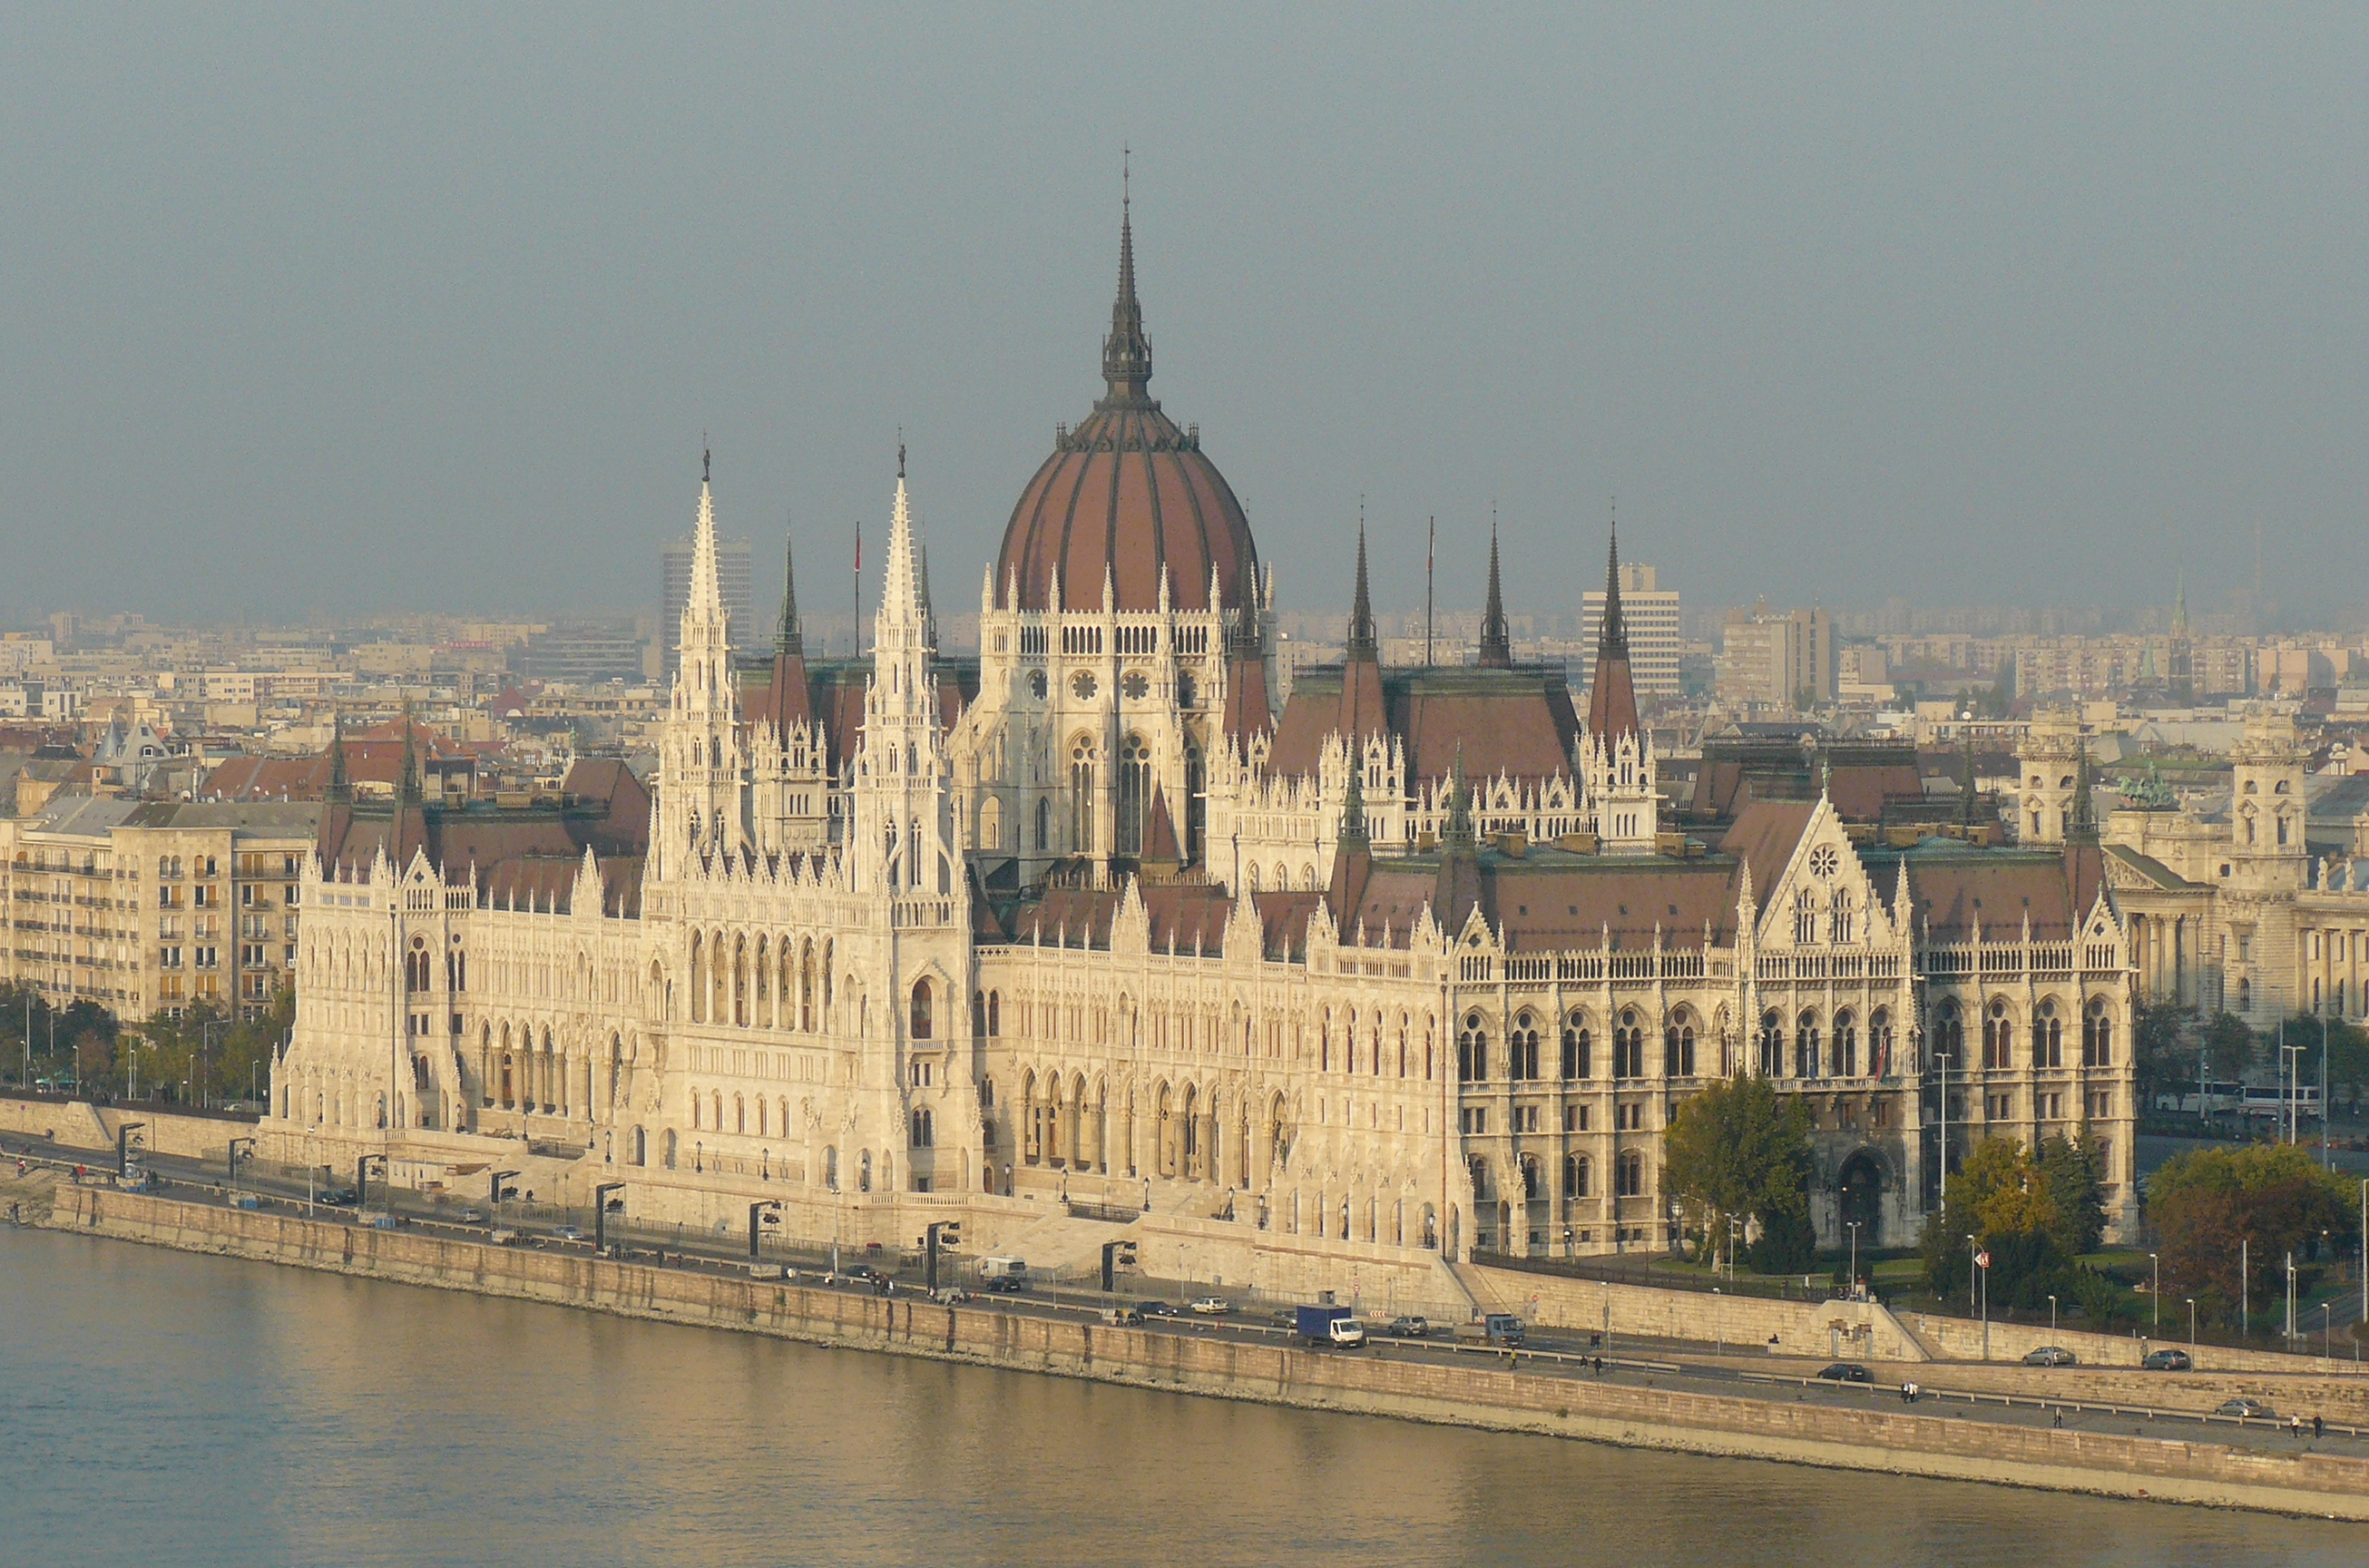 Building of the Hungarian Parliament, where is the Office of the Hungarian Prime Minister. View from Buda castle, 2009.